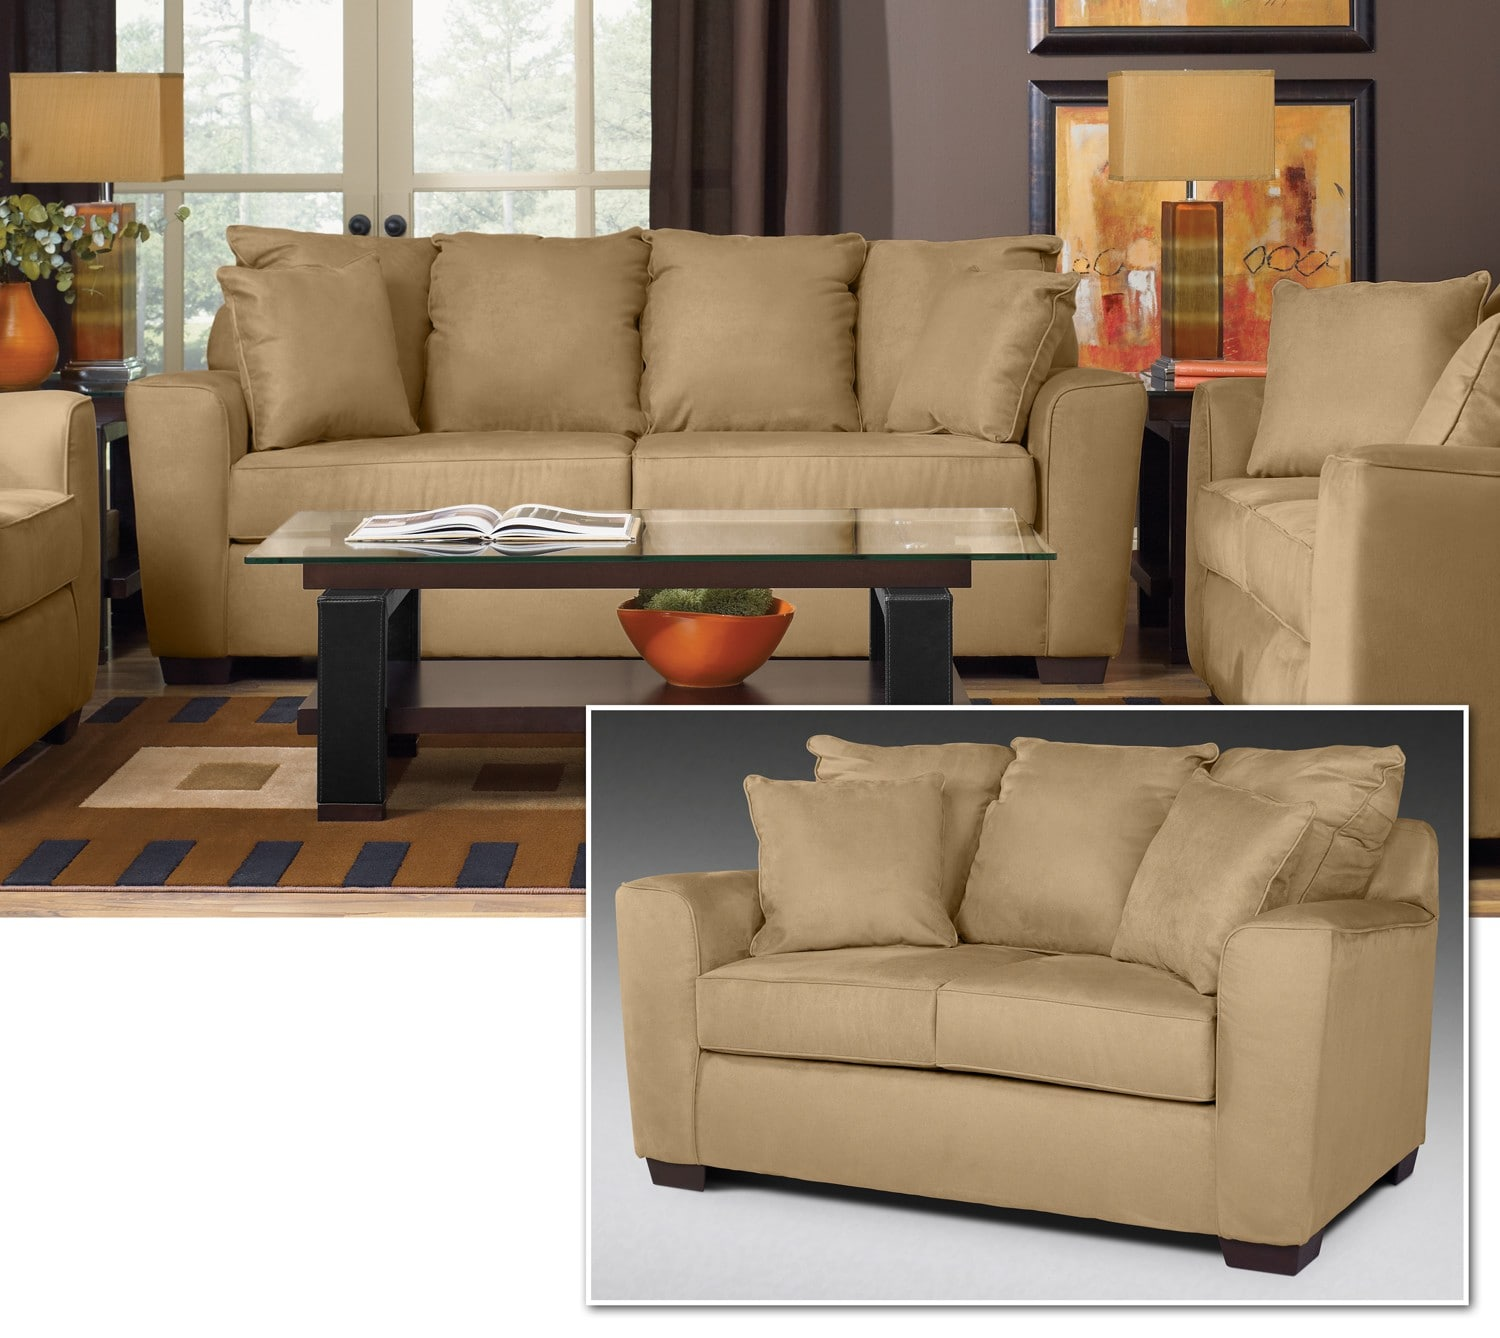 living room furniture package deals. Delta City Steel 3 Piece Sectional Sofa For  75004 38 35 Rm Pkg Ashley Furniture Darcy Cafe Room Cheap Home